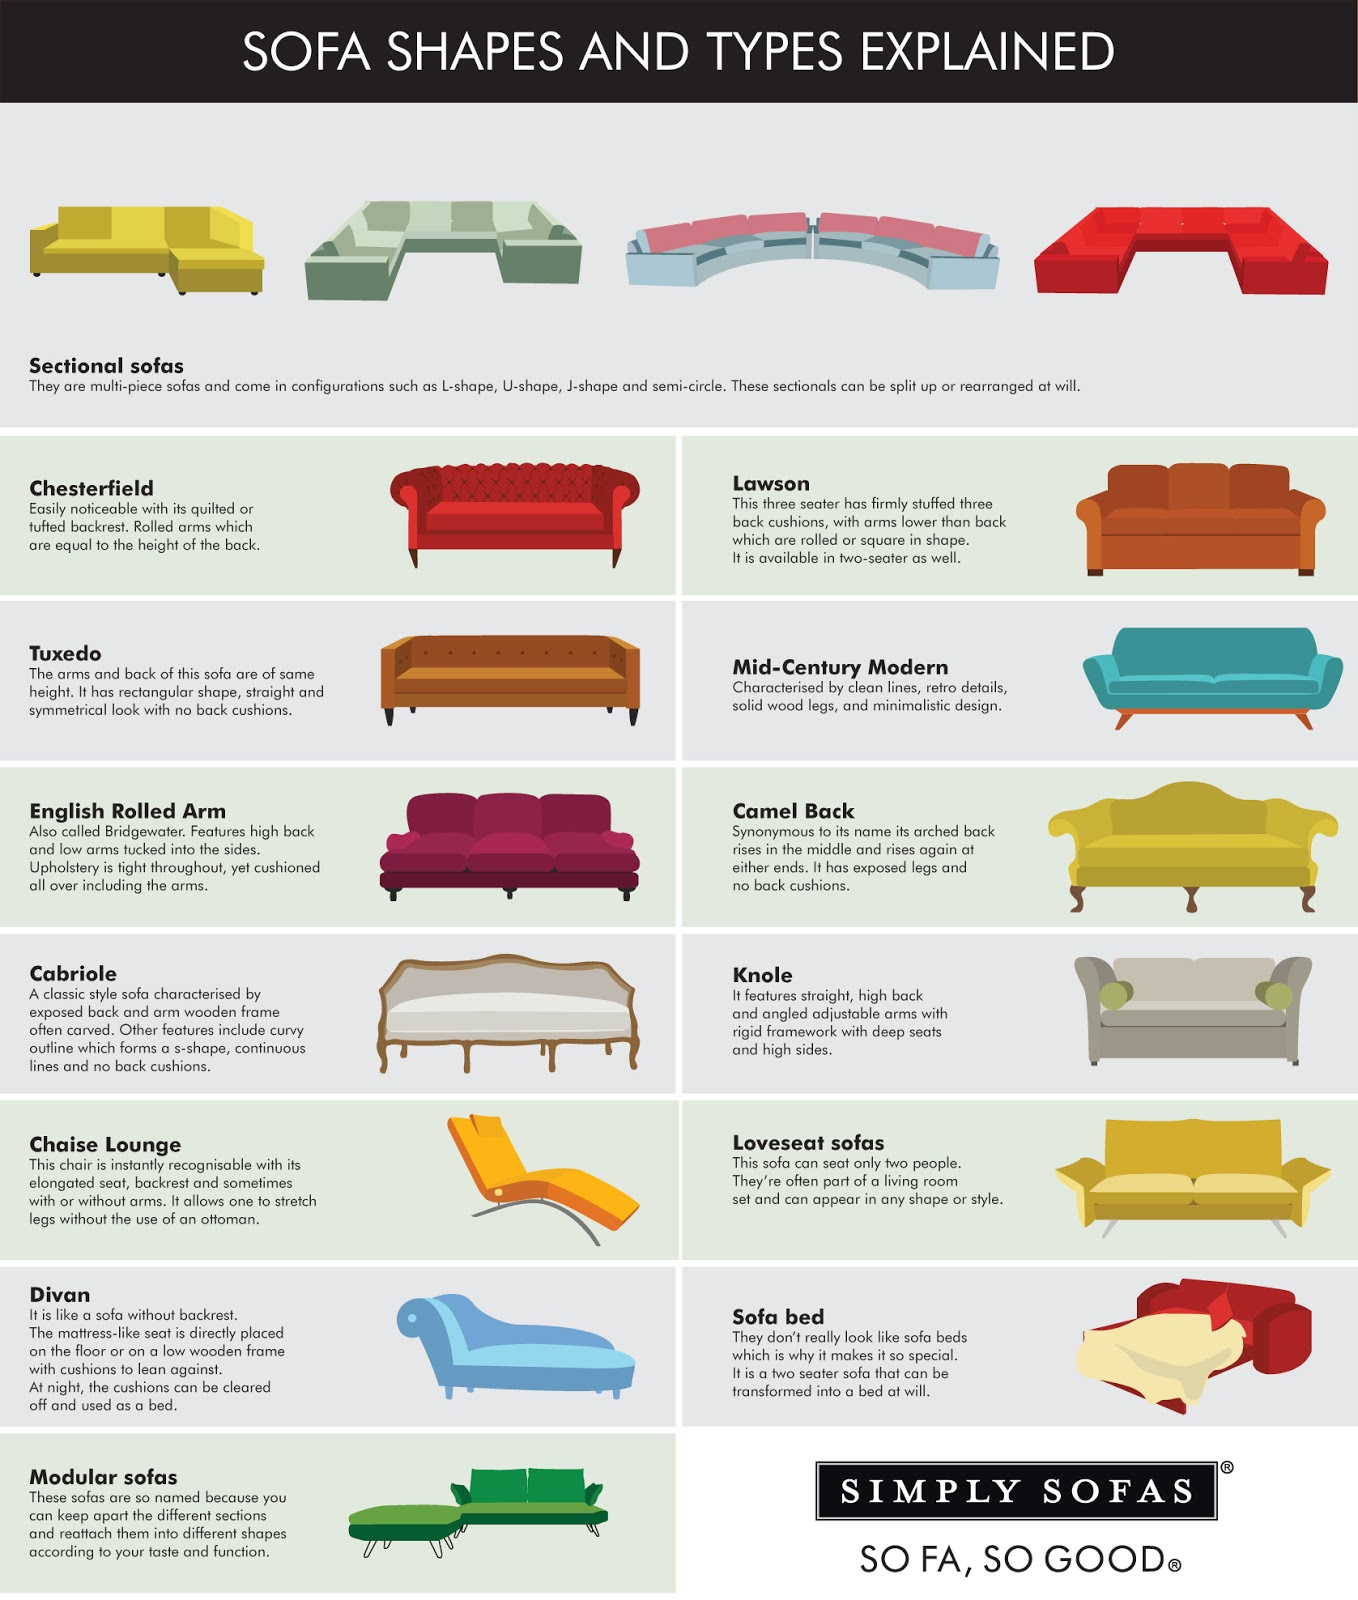 Kinds of sofas types of sofas home design and decor thesofa for Decorating styles explained